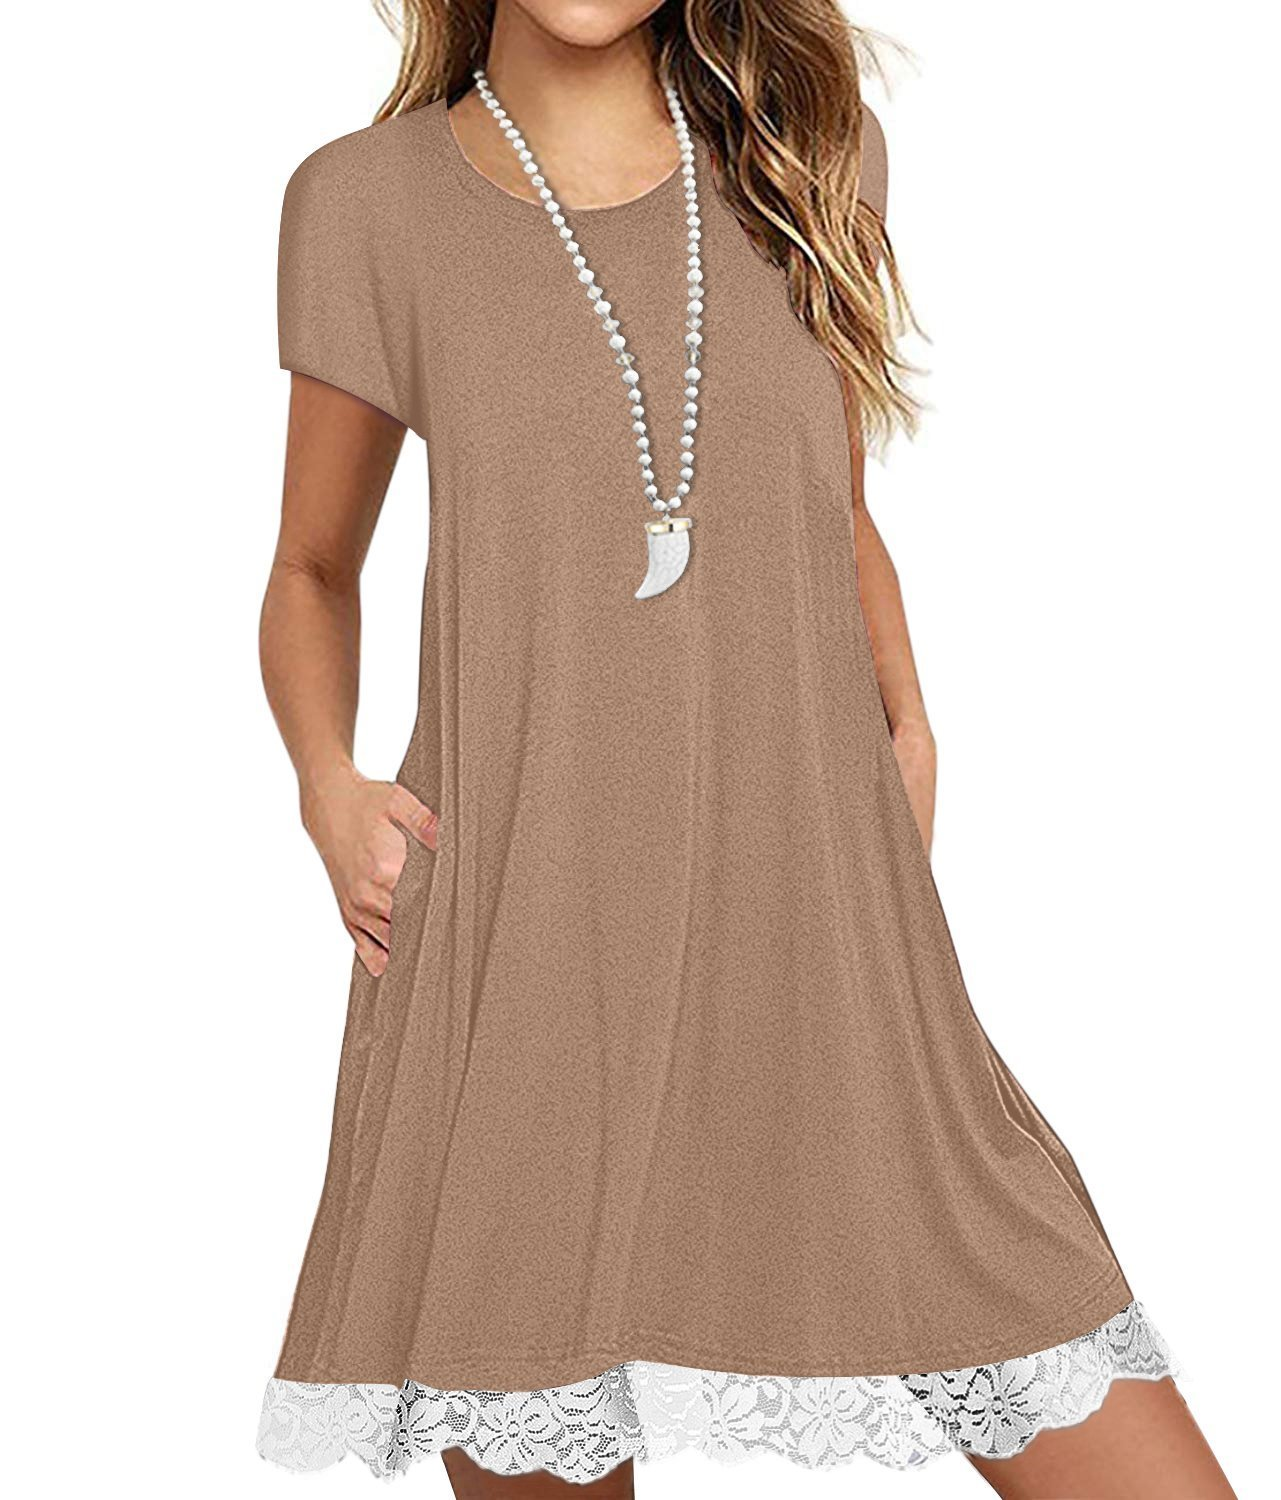 Eanklosco Womens Casual Short Sleeve Plain Pocket V Neck T Shirt Tunic Dress (LightCoffe-2, L)